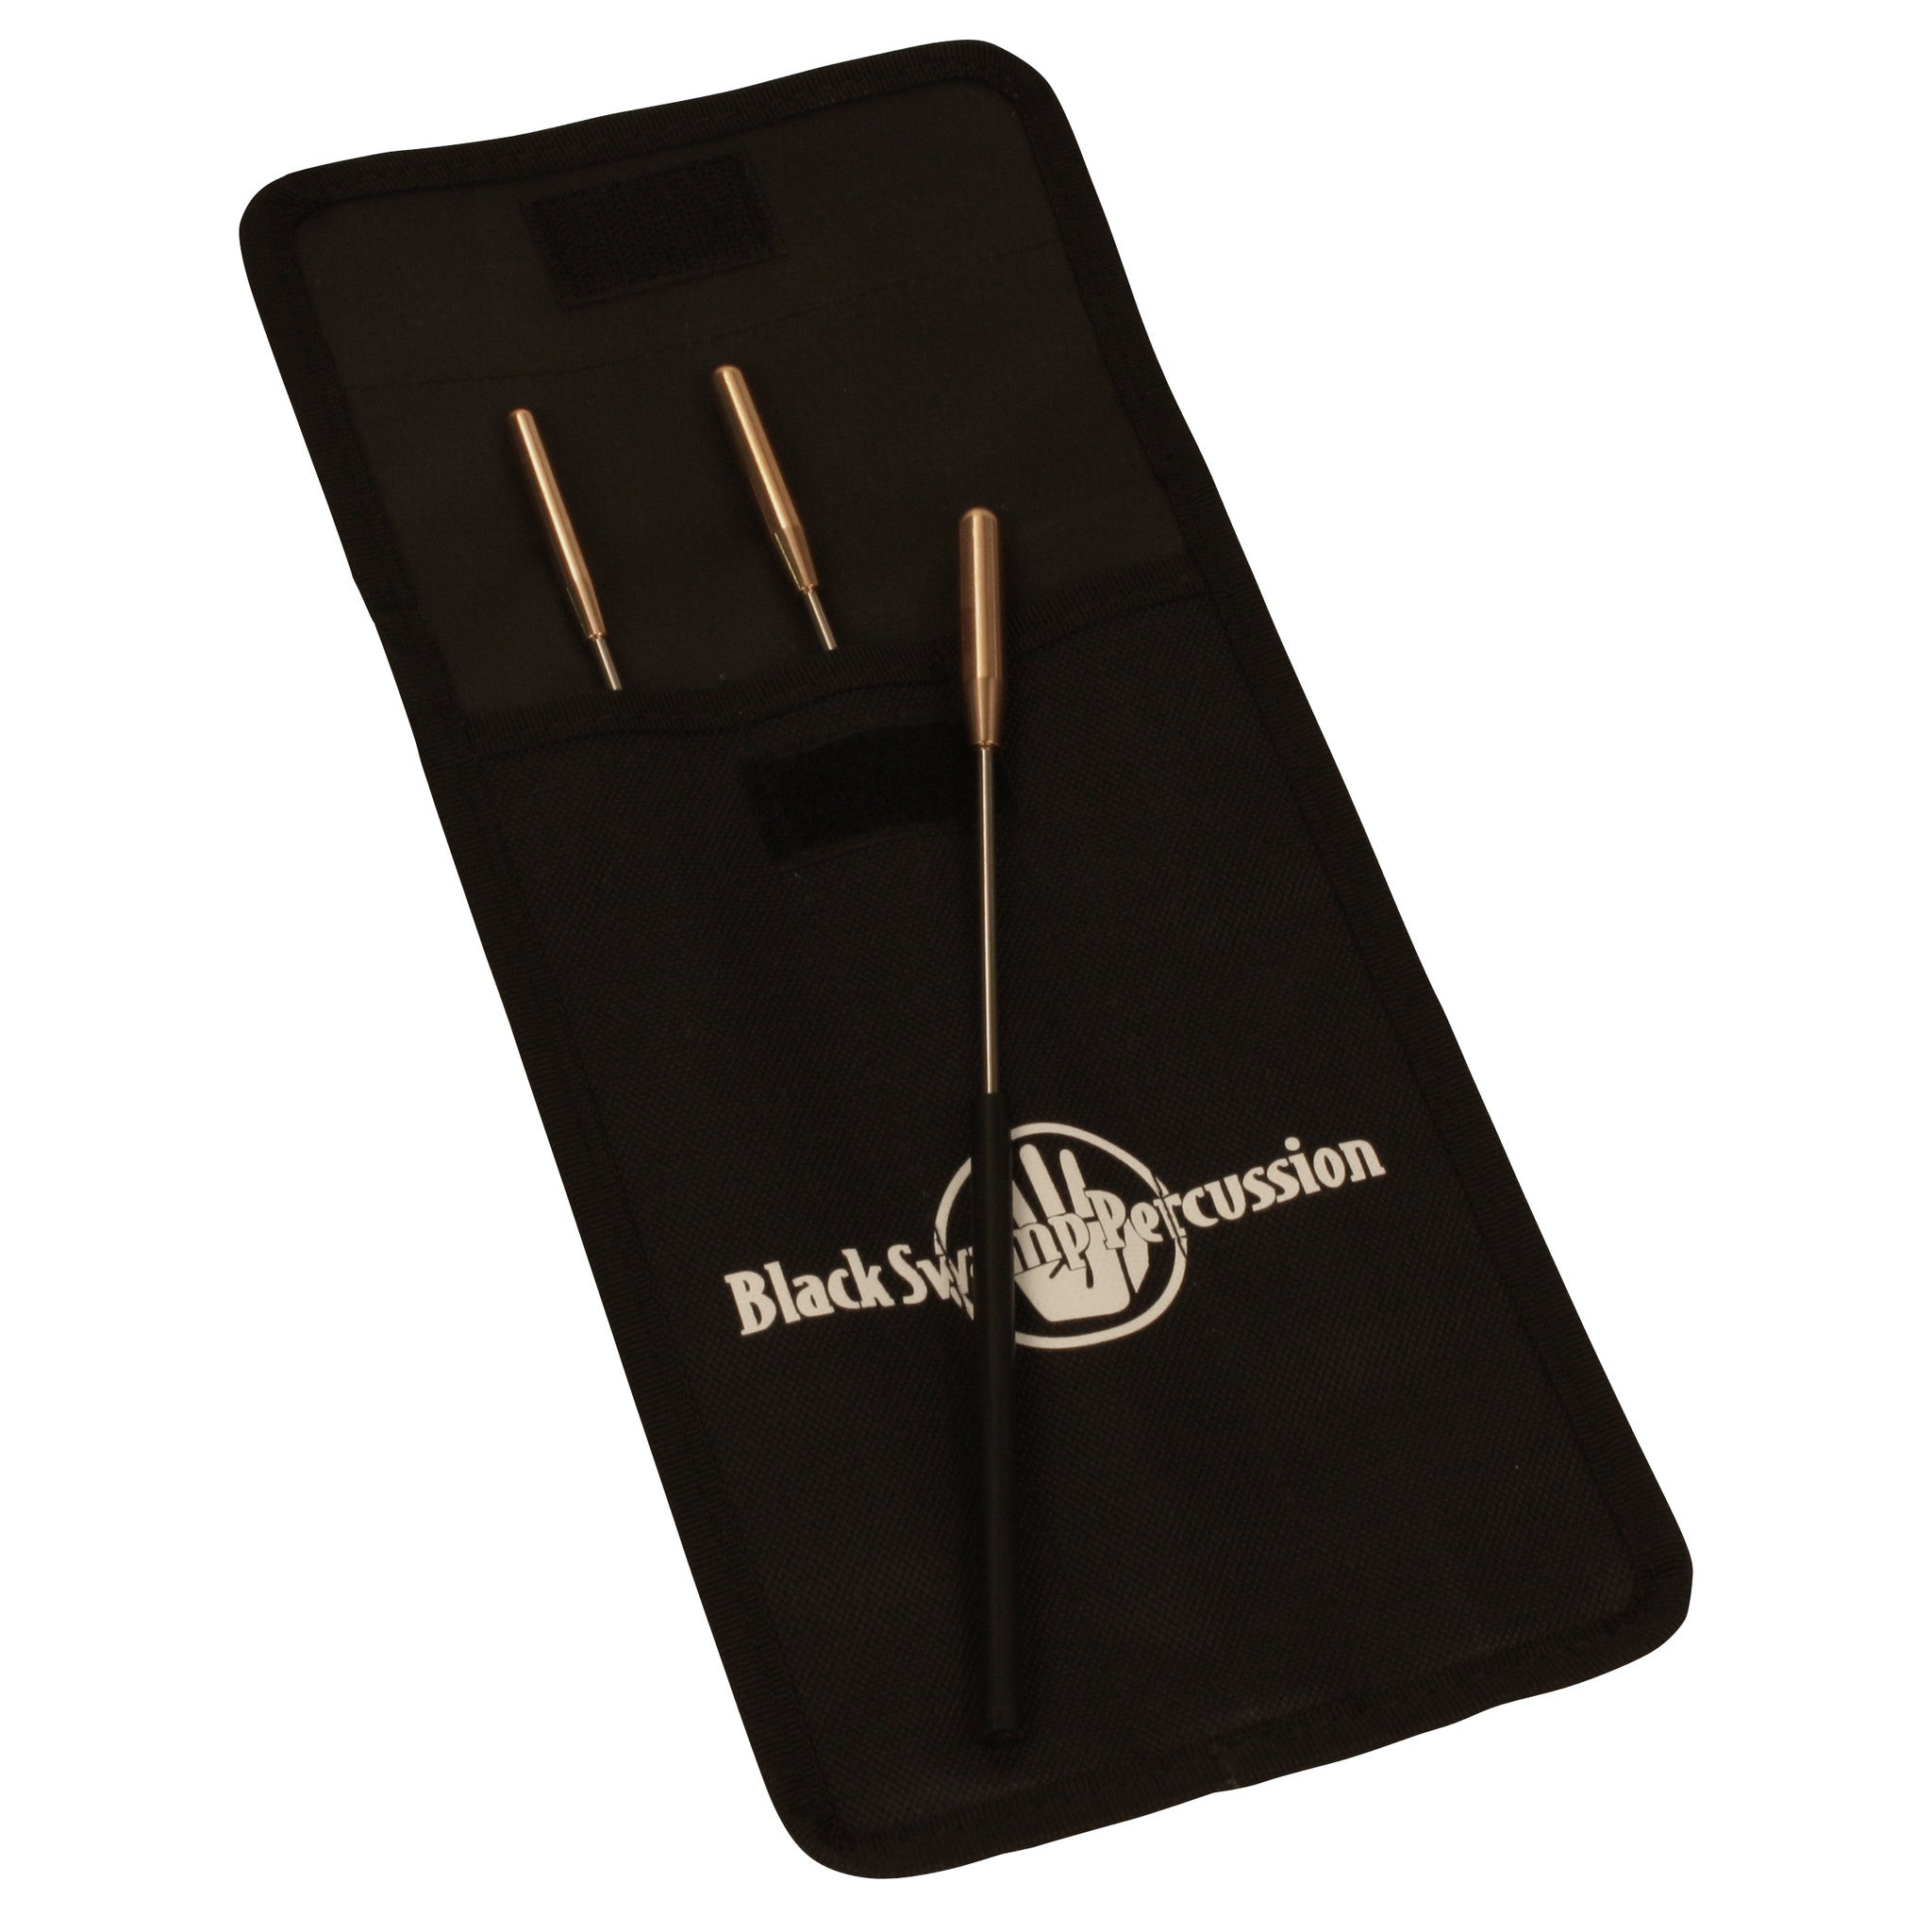 Black Swamp Set de 3 Batidores Spectrum™ con funda de Nylon